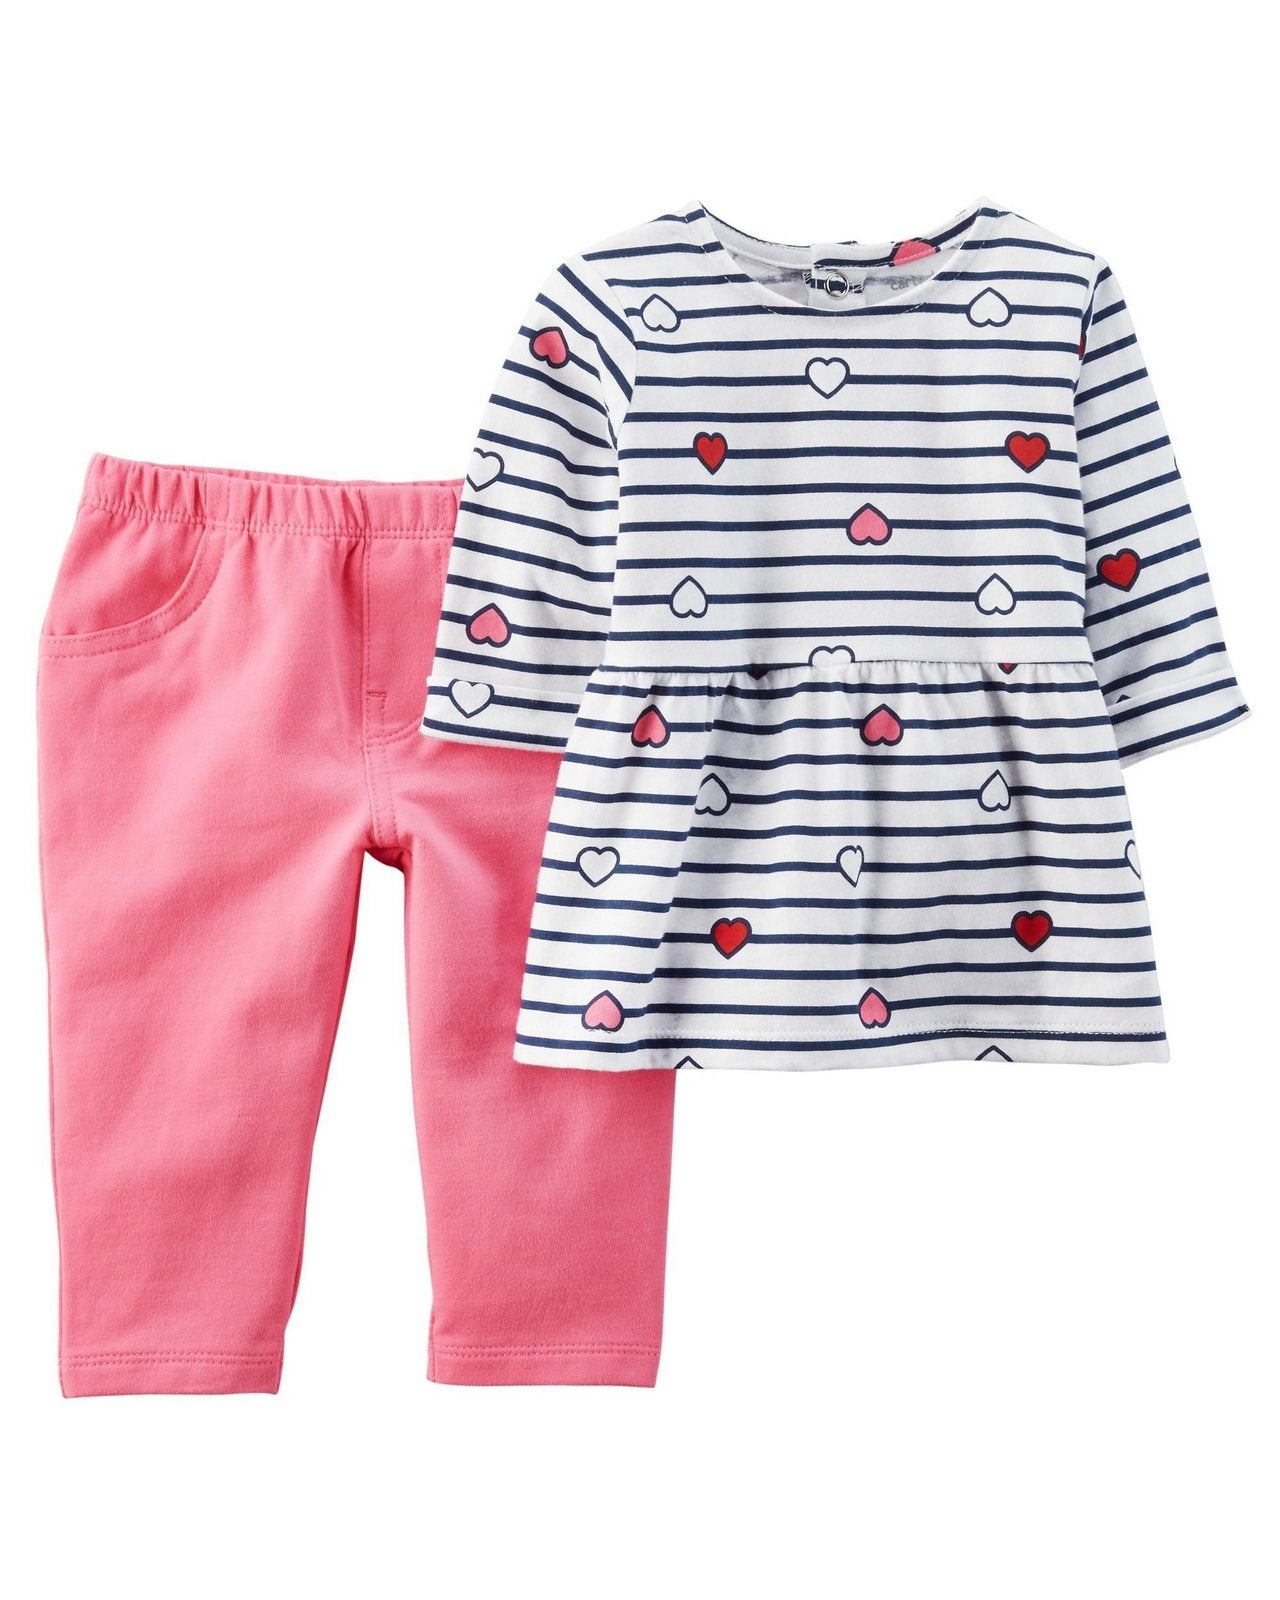 Carter's 2-Piece Heart Top & French Terry Pant Set  Modelo 127G845